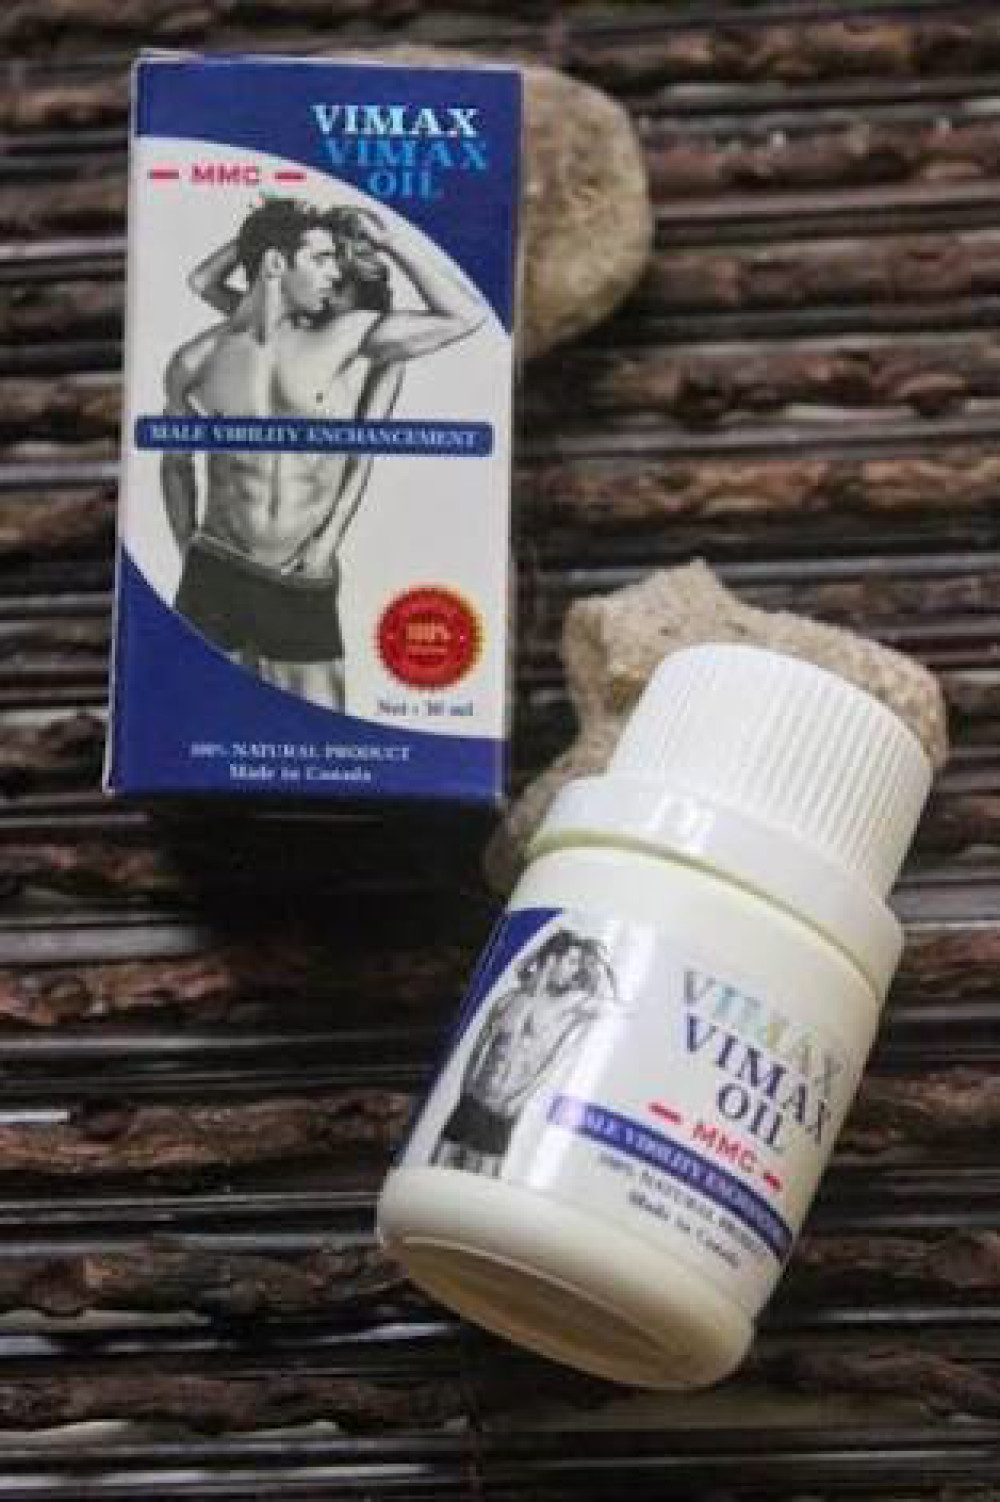 vimax oil original by mmc minyak oil pembesar penis herbal asli